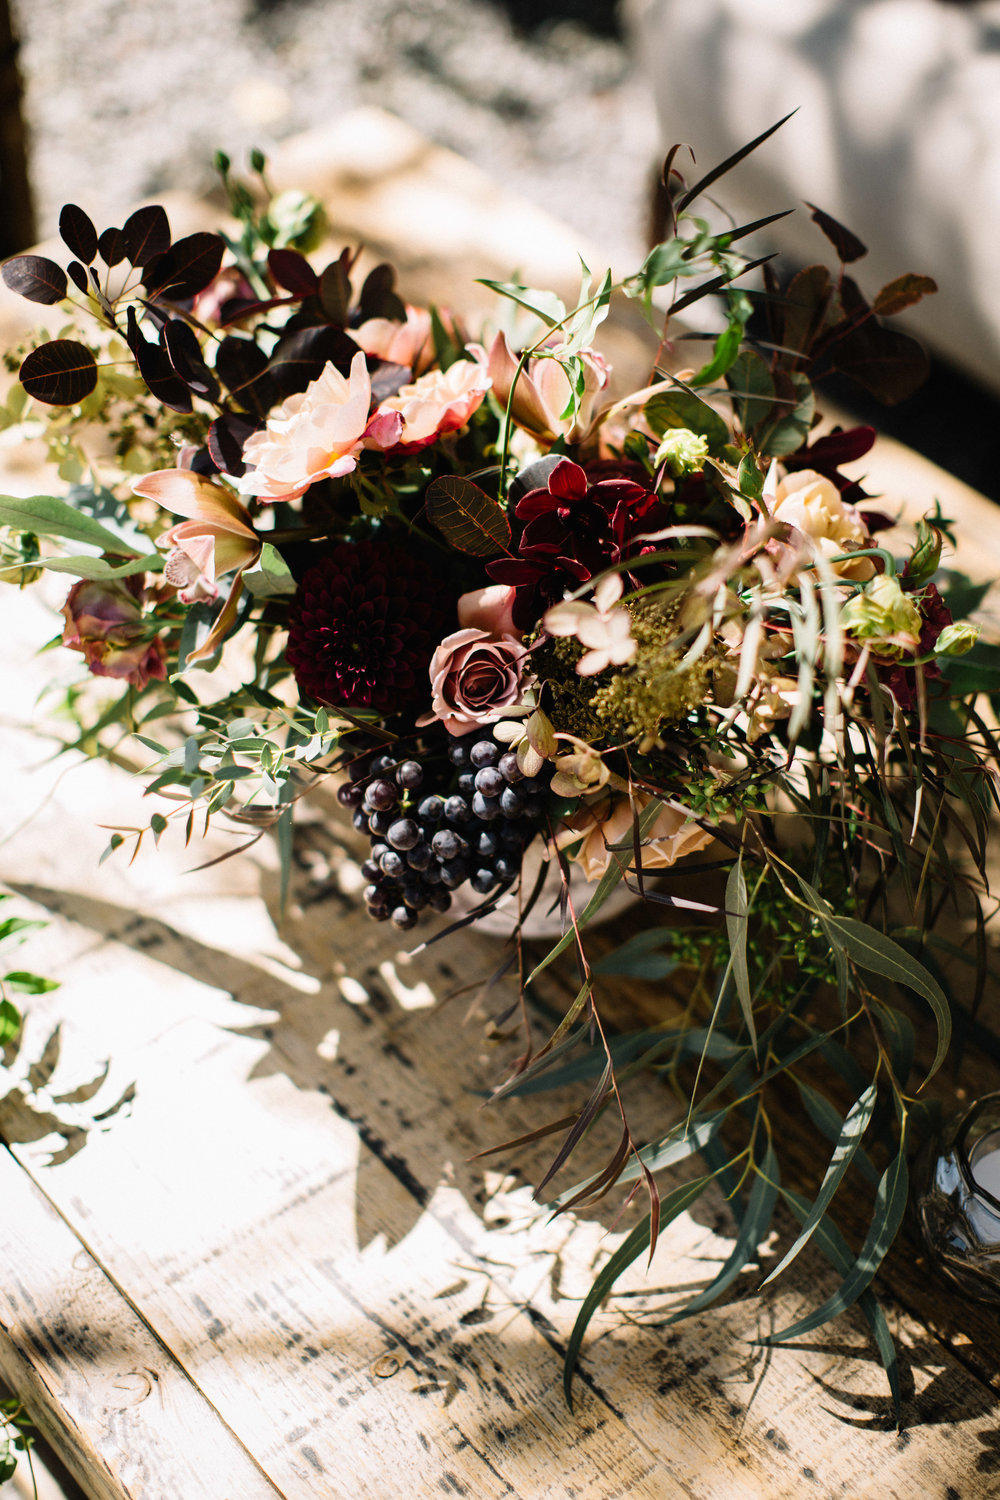 Seasonal floral design by Venn Floral with black grapes, koko loko garden rose, eucalyptus and orchids for a Sonoma Coast ranch wedding photographed by Lucille Lawrence.